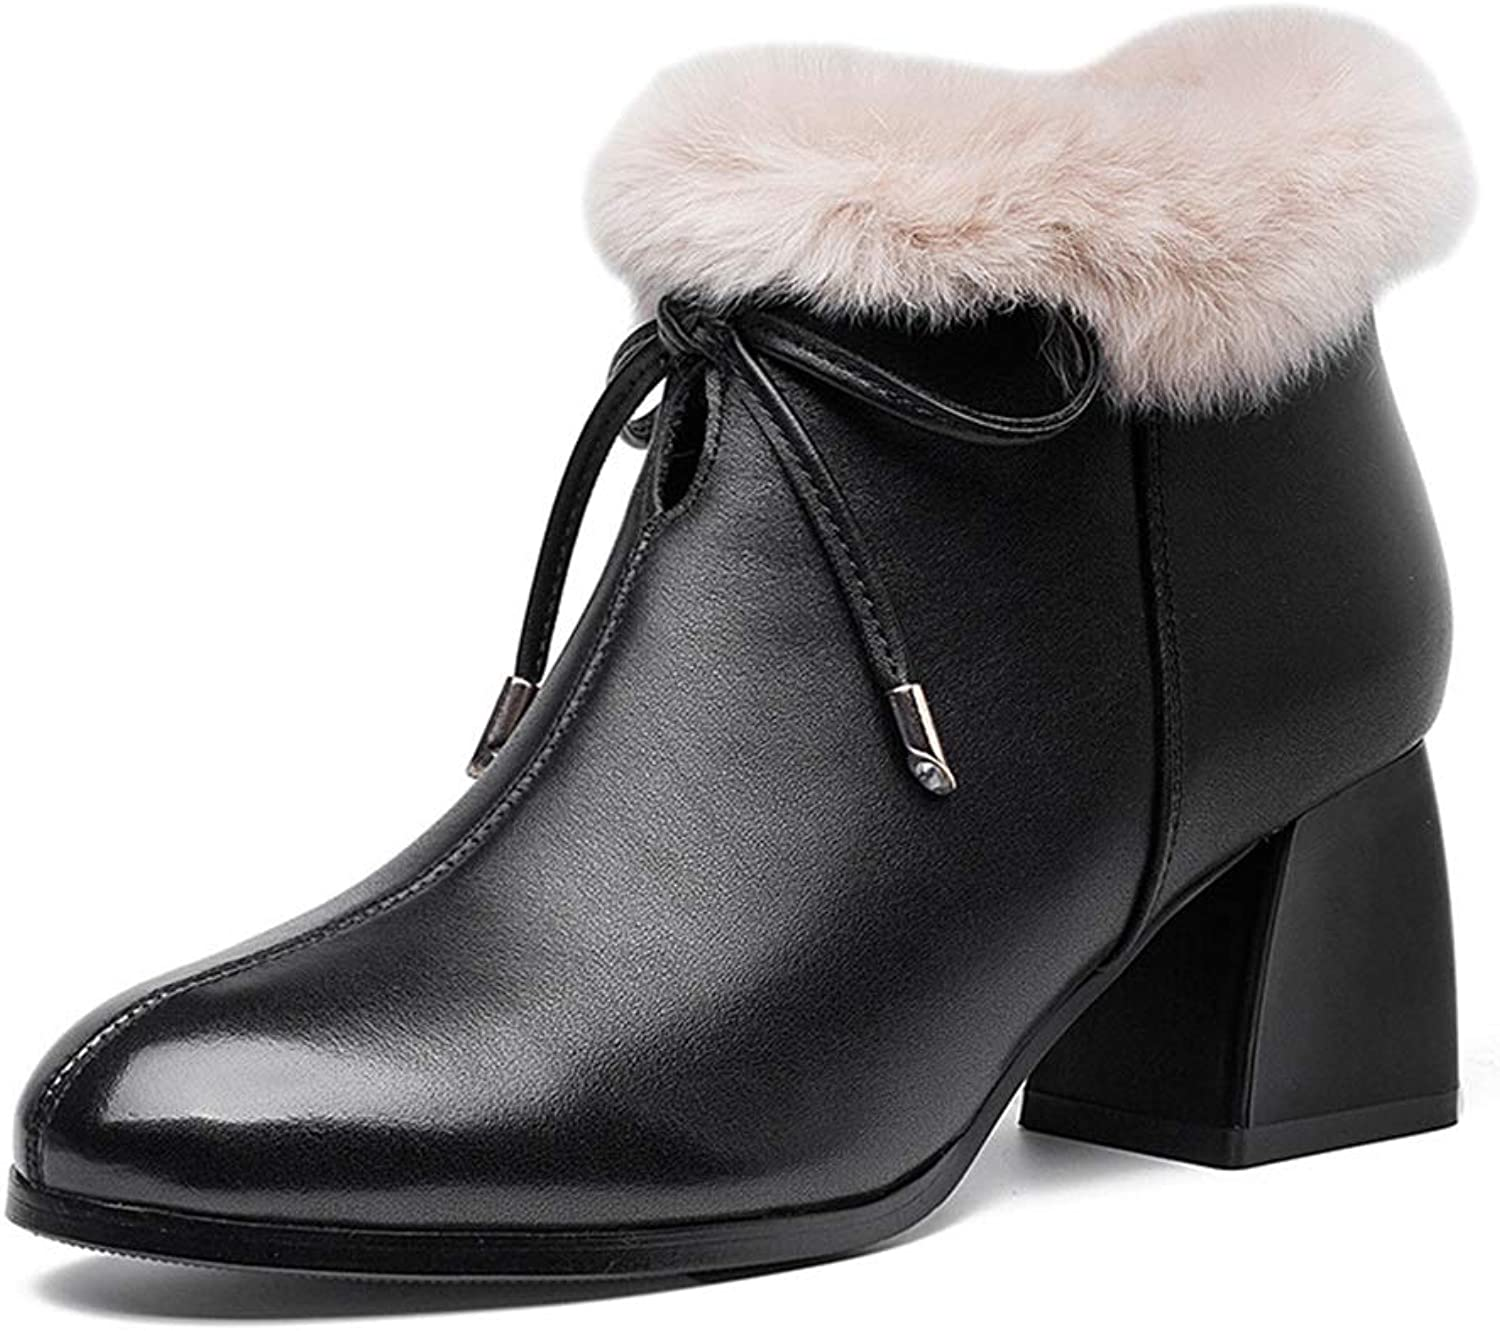 Womens Ankle Boots, Winter Boots Heels, Ladies Fashion High shoes Anti-Slip Zipper High Heel Ankle Pointed Head (color   Black, Size   38)